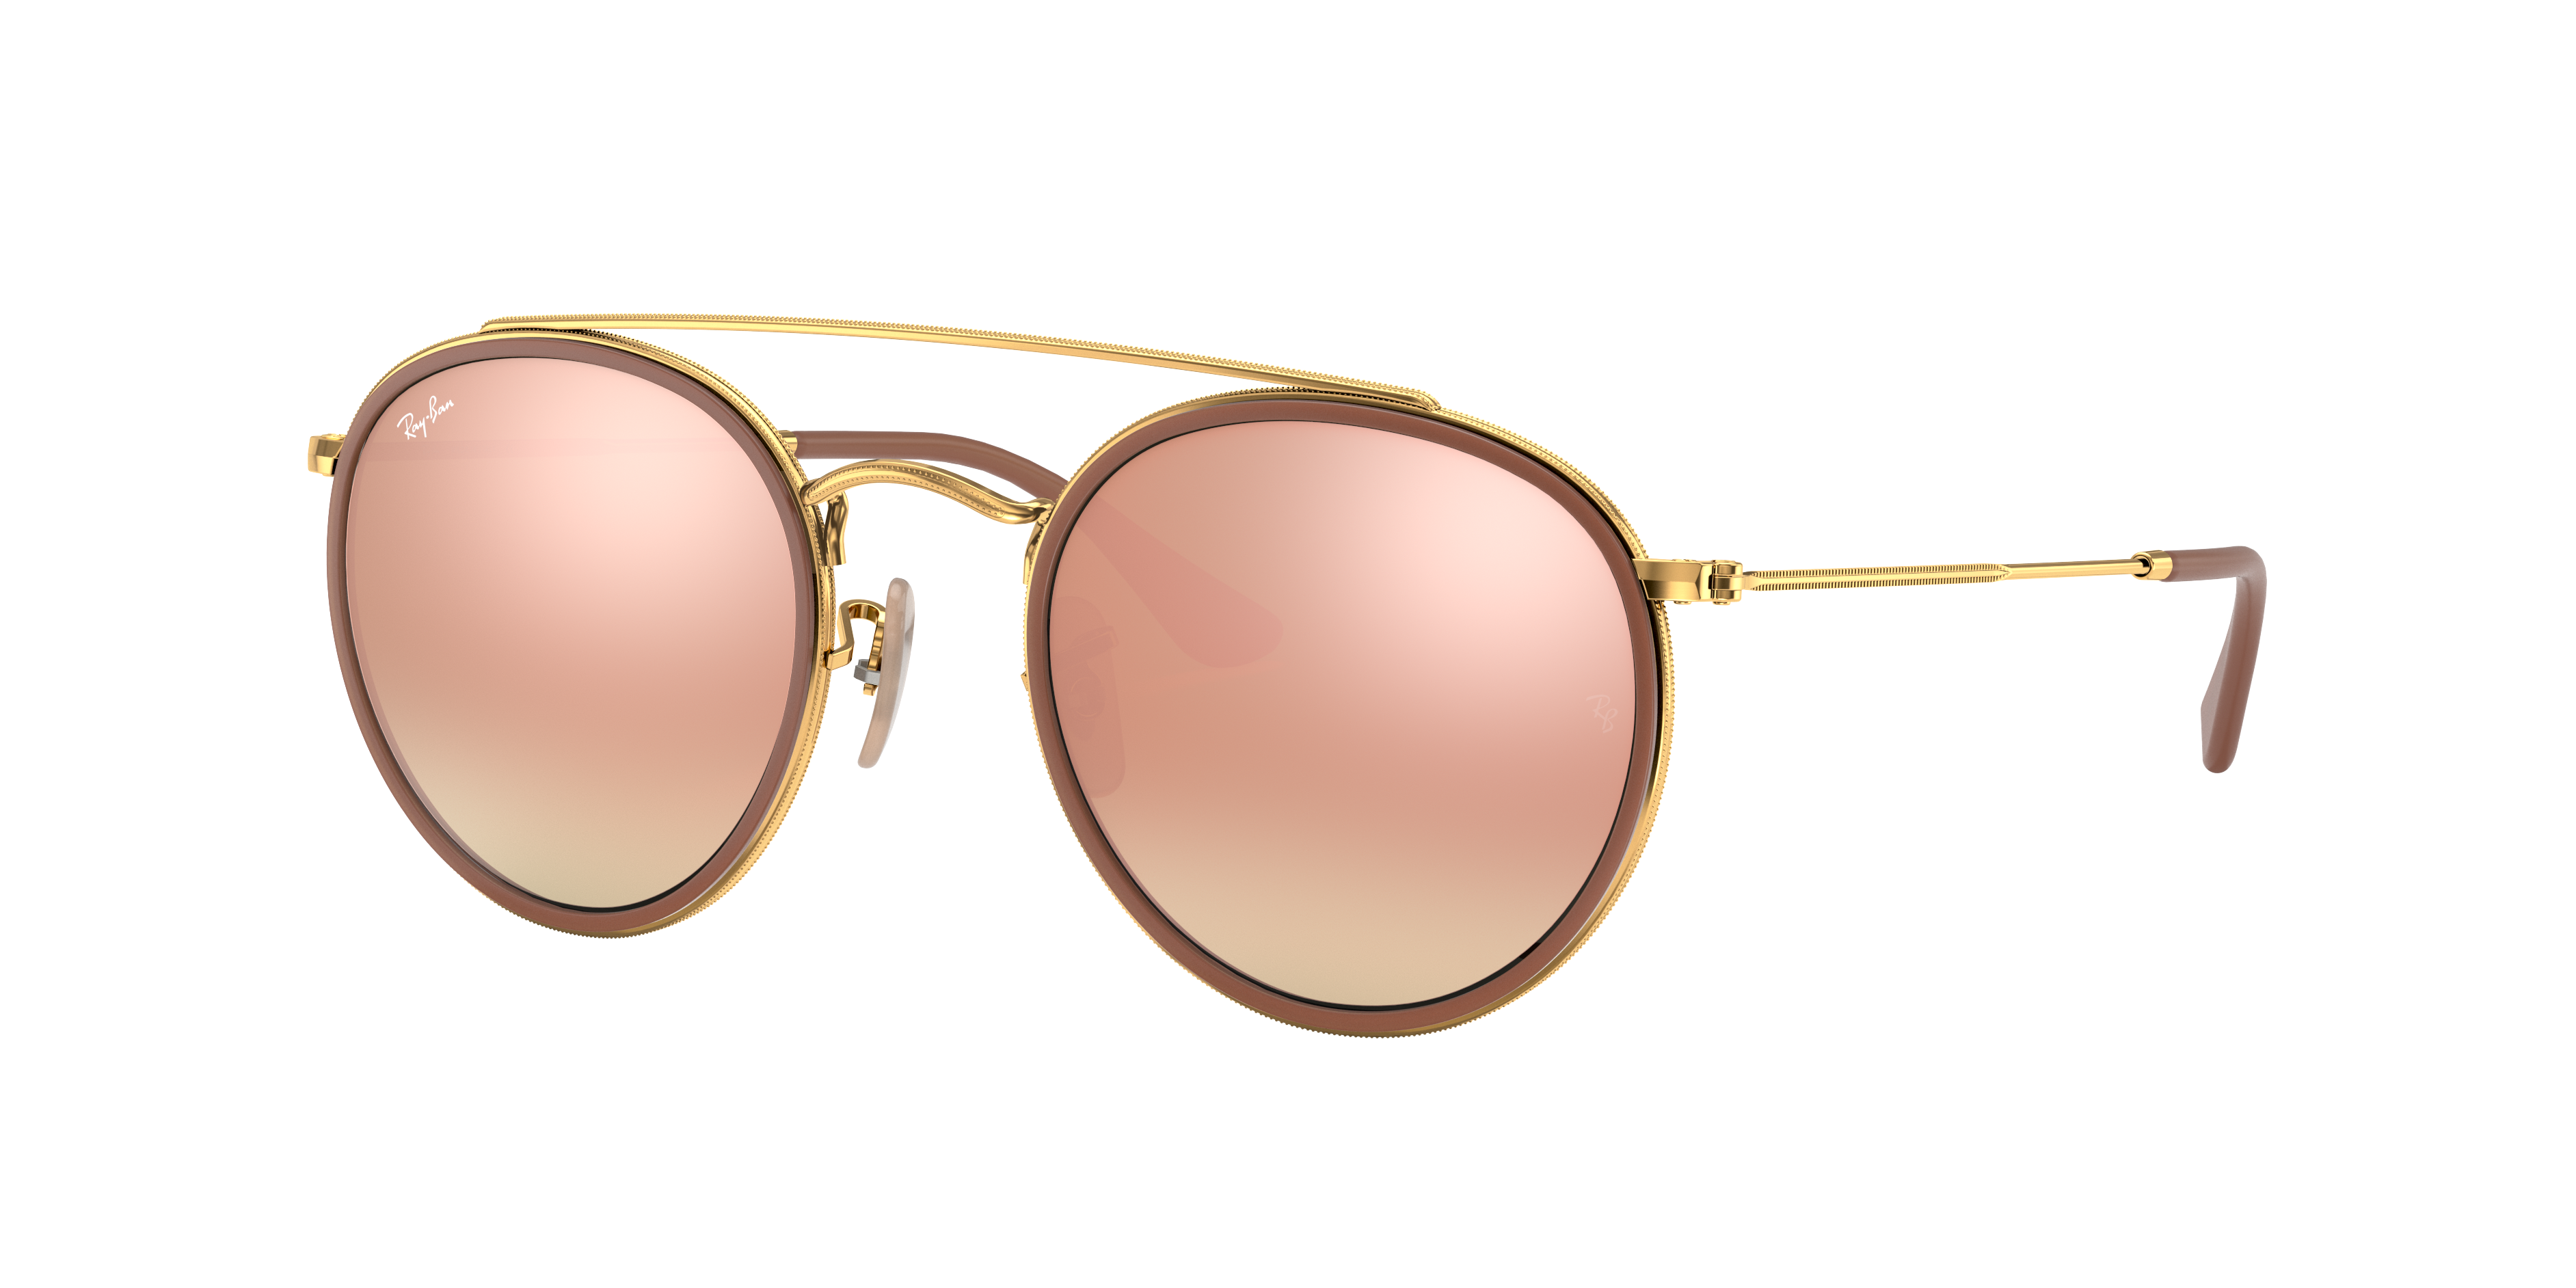 Ray-Ban Round Double Bridge Gold, Pink Lenses - RB3647N